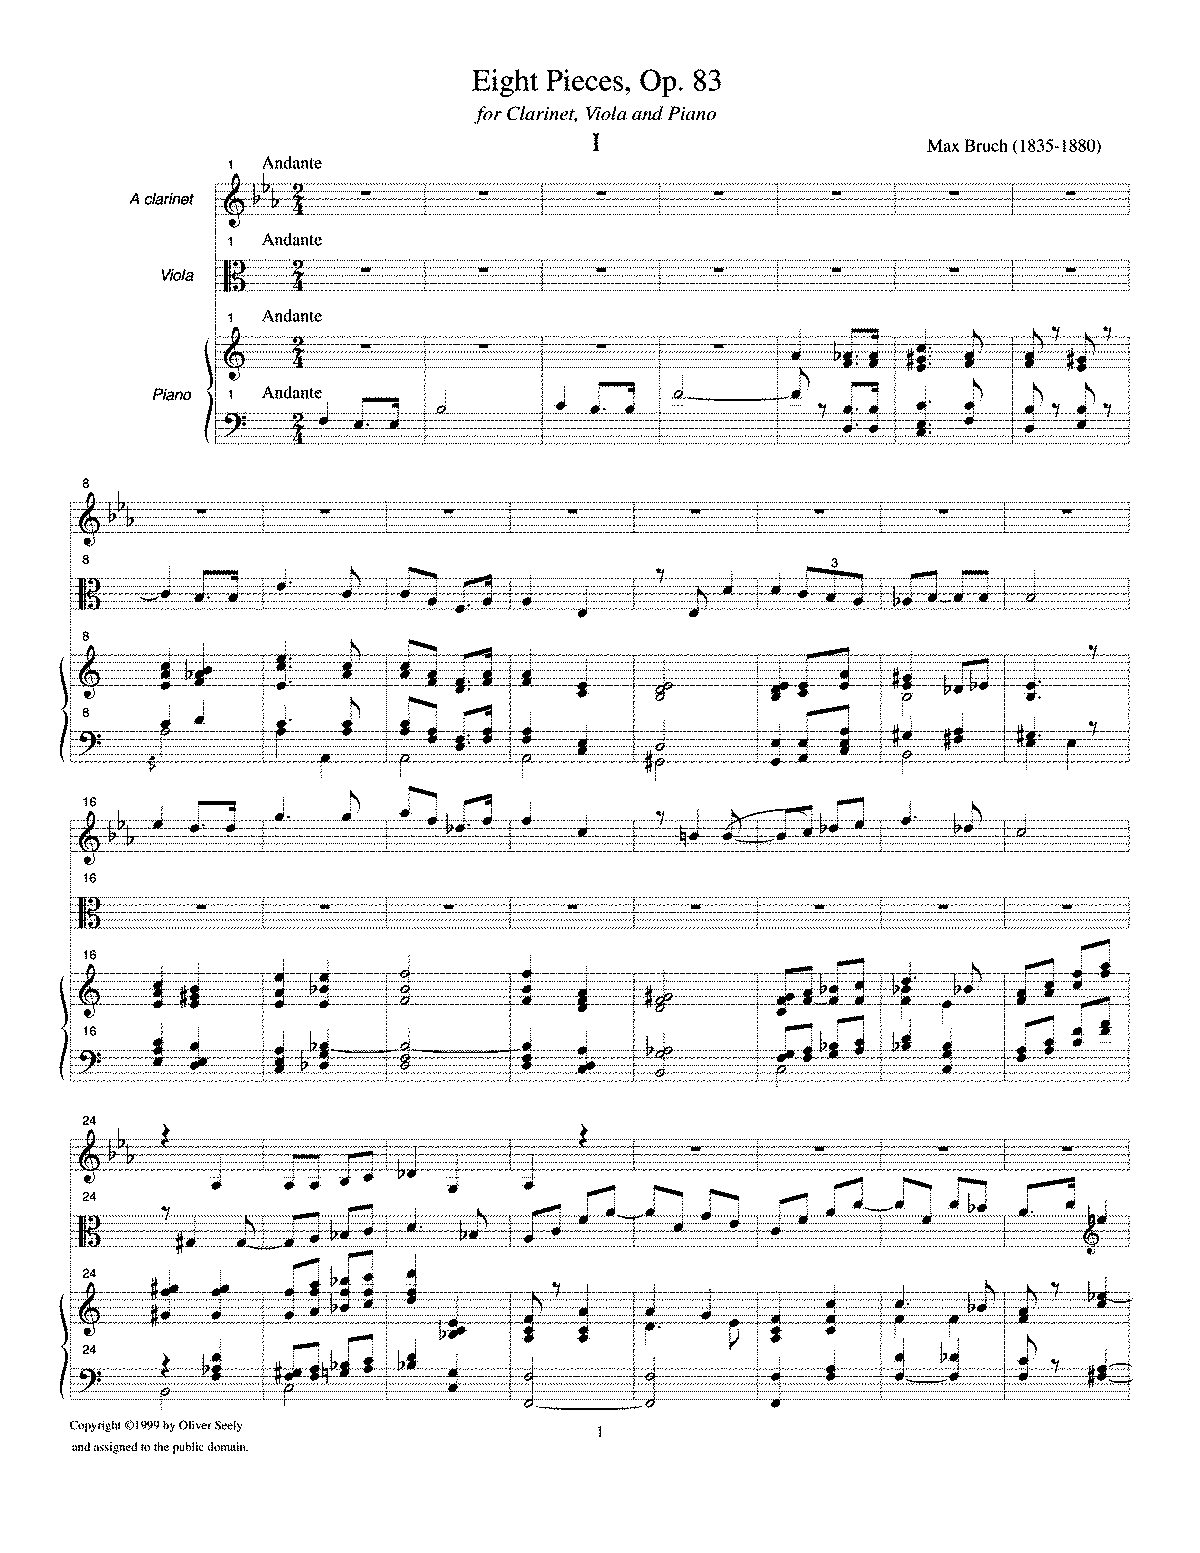 Bruch. Max - 8Pieces.Op83-1(Clarinet.Viola,Piano).pdf